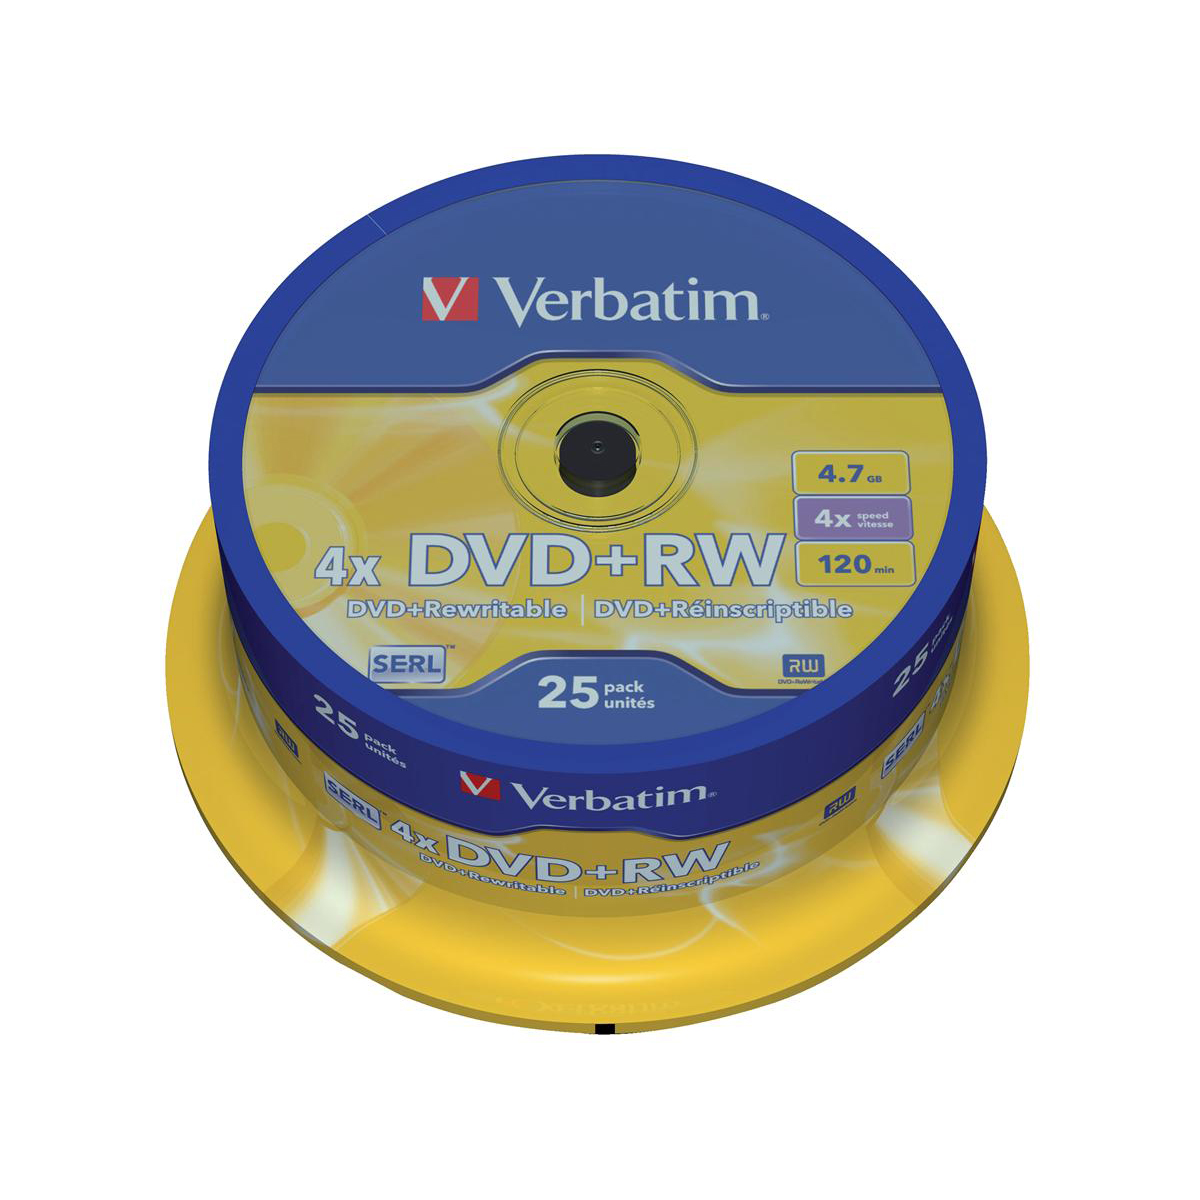 Verbatim DVD+RW Rewritable Disk Spindle 1x-4x Speed 120min 4.7Gb Ref 43489 Pack 25